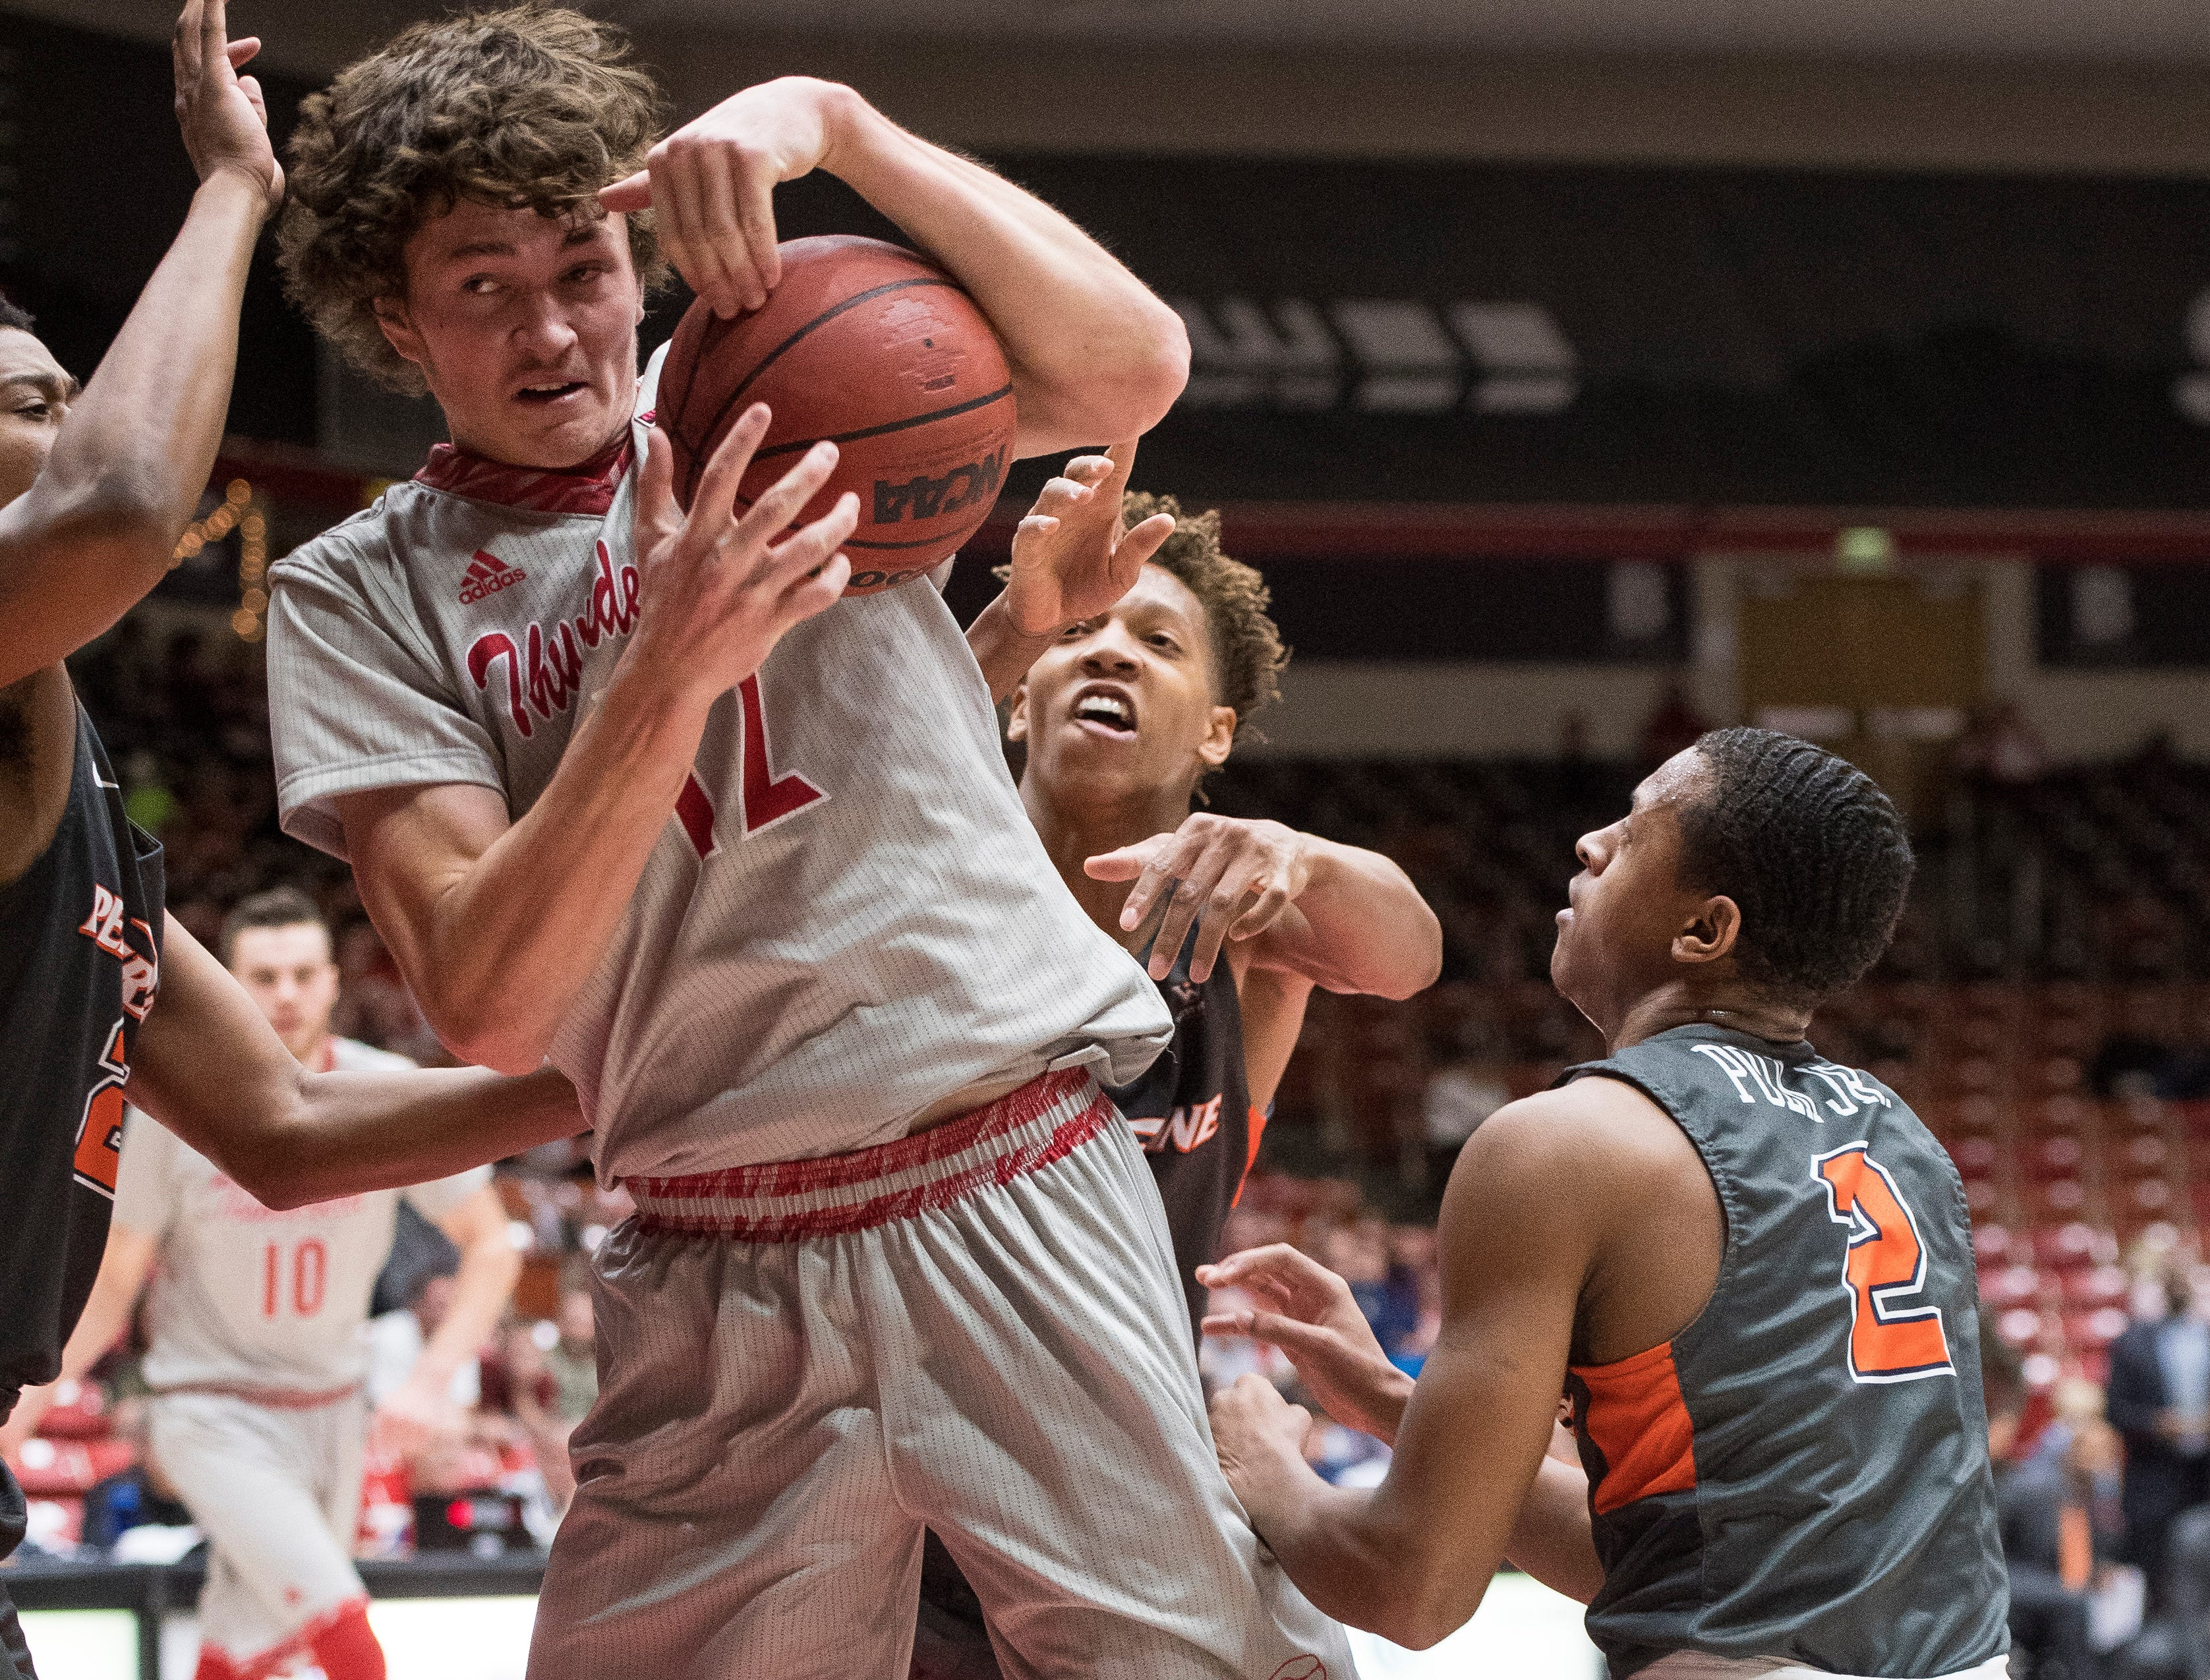 Southern Utah University freshman Maizen Fausett (12) fights for a rebound against Pepperdine University in the America First Event Center Saturday, December 15, 2018. SUU won in overtime, 78-69.